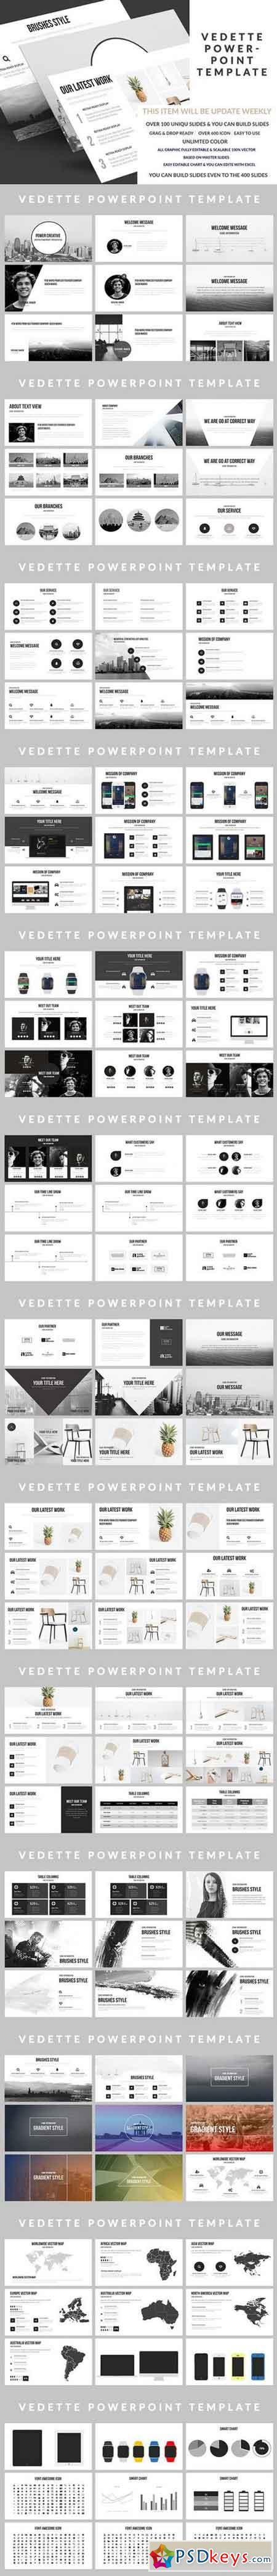 Vedette PowerPoint Template 678251